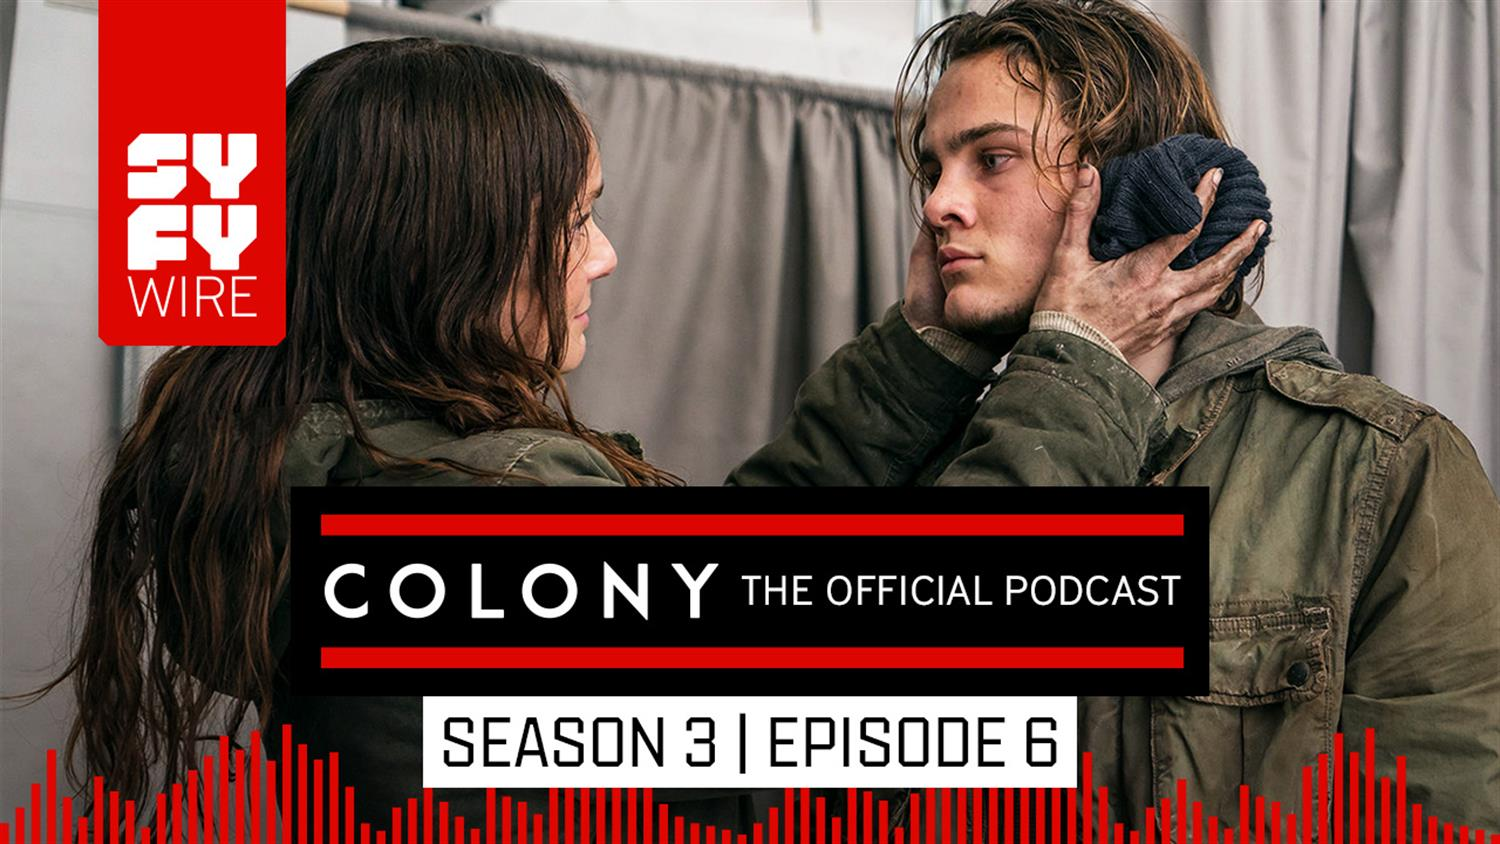 Colony The Official Podcast: Season 3, Episode 6